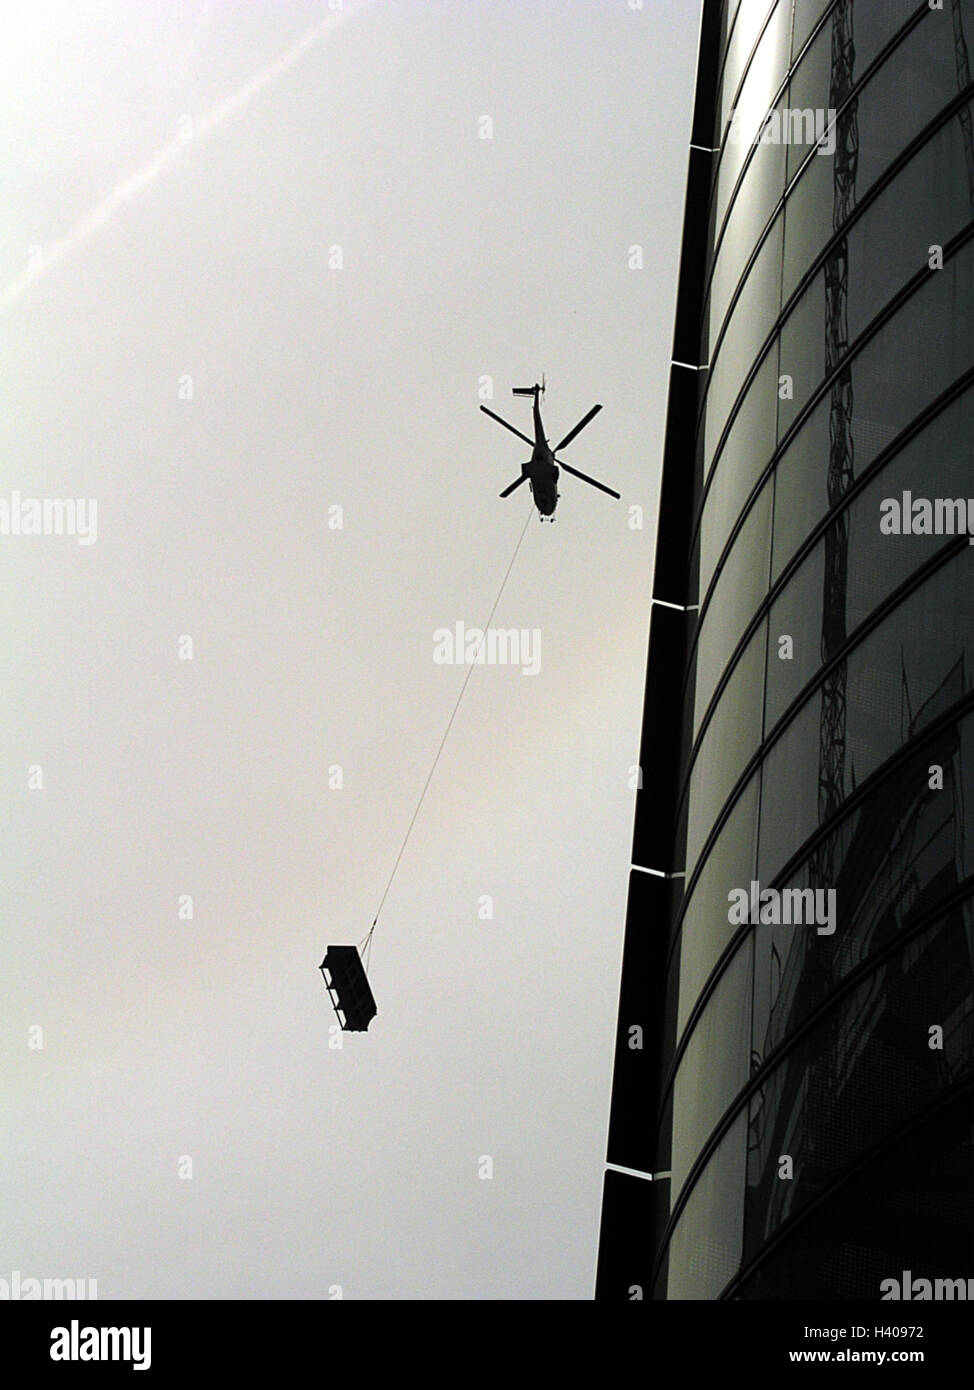 Silhouette, high rise, facade, costs helicopter, from below, skyscraper, office building, helicopter, helicopter, Stock Photo